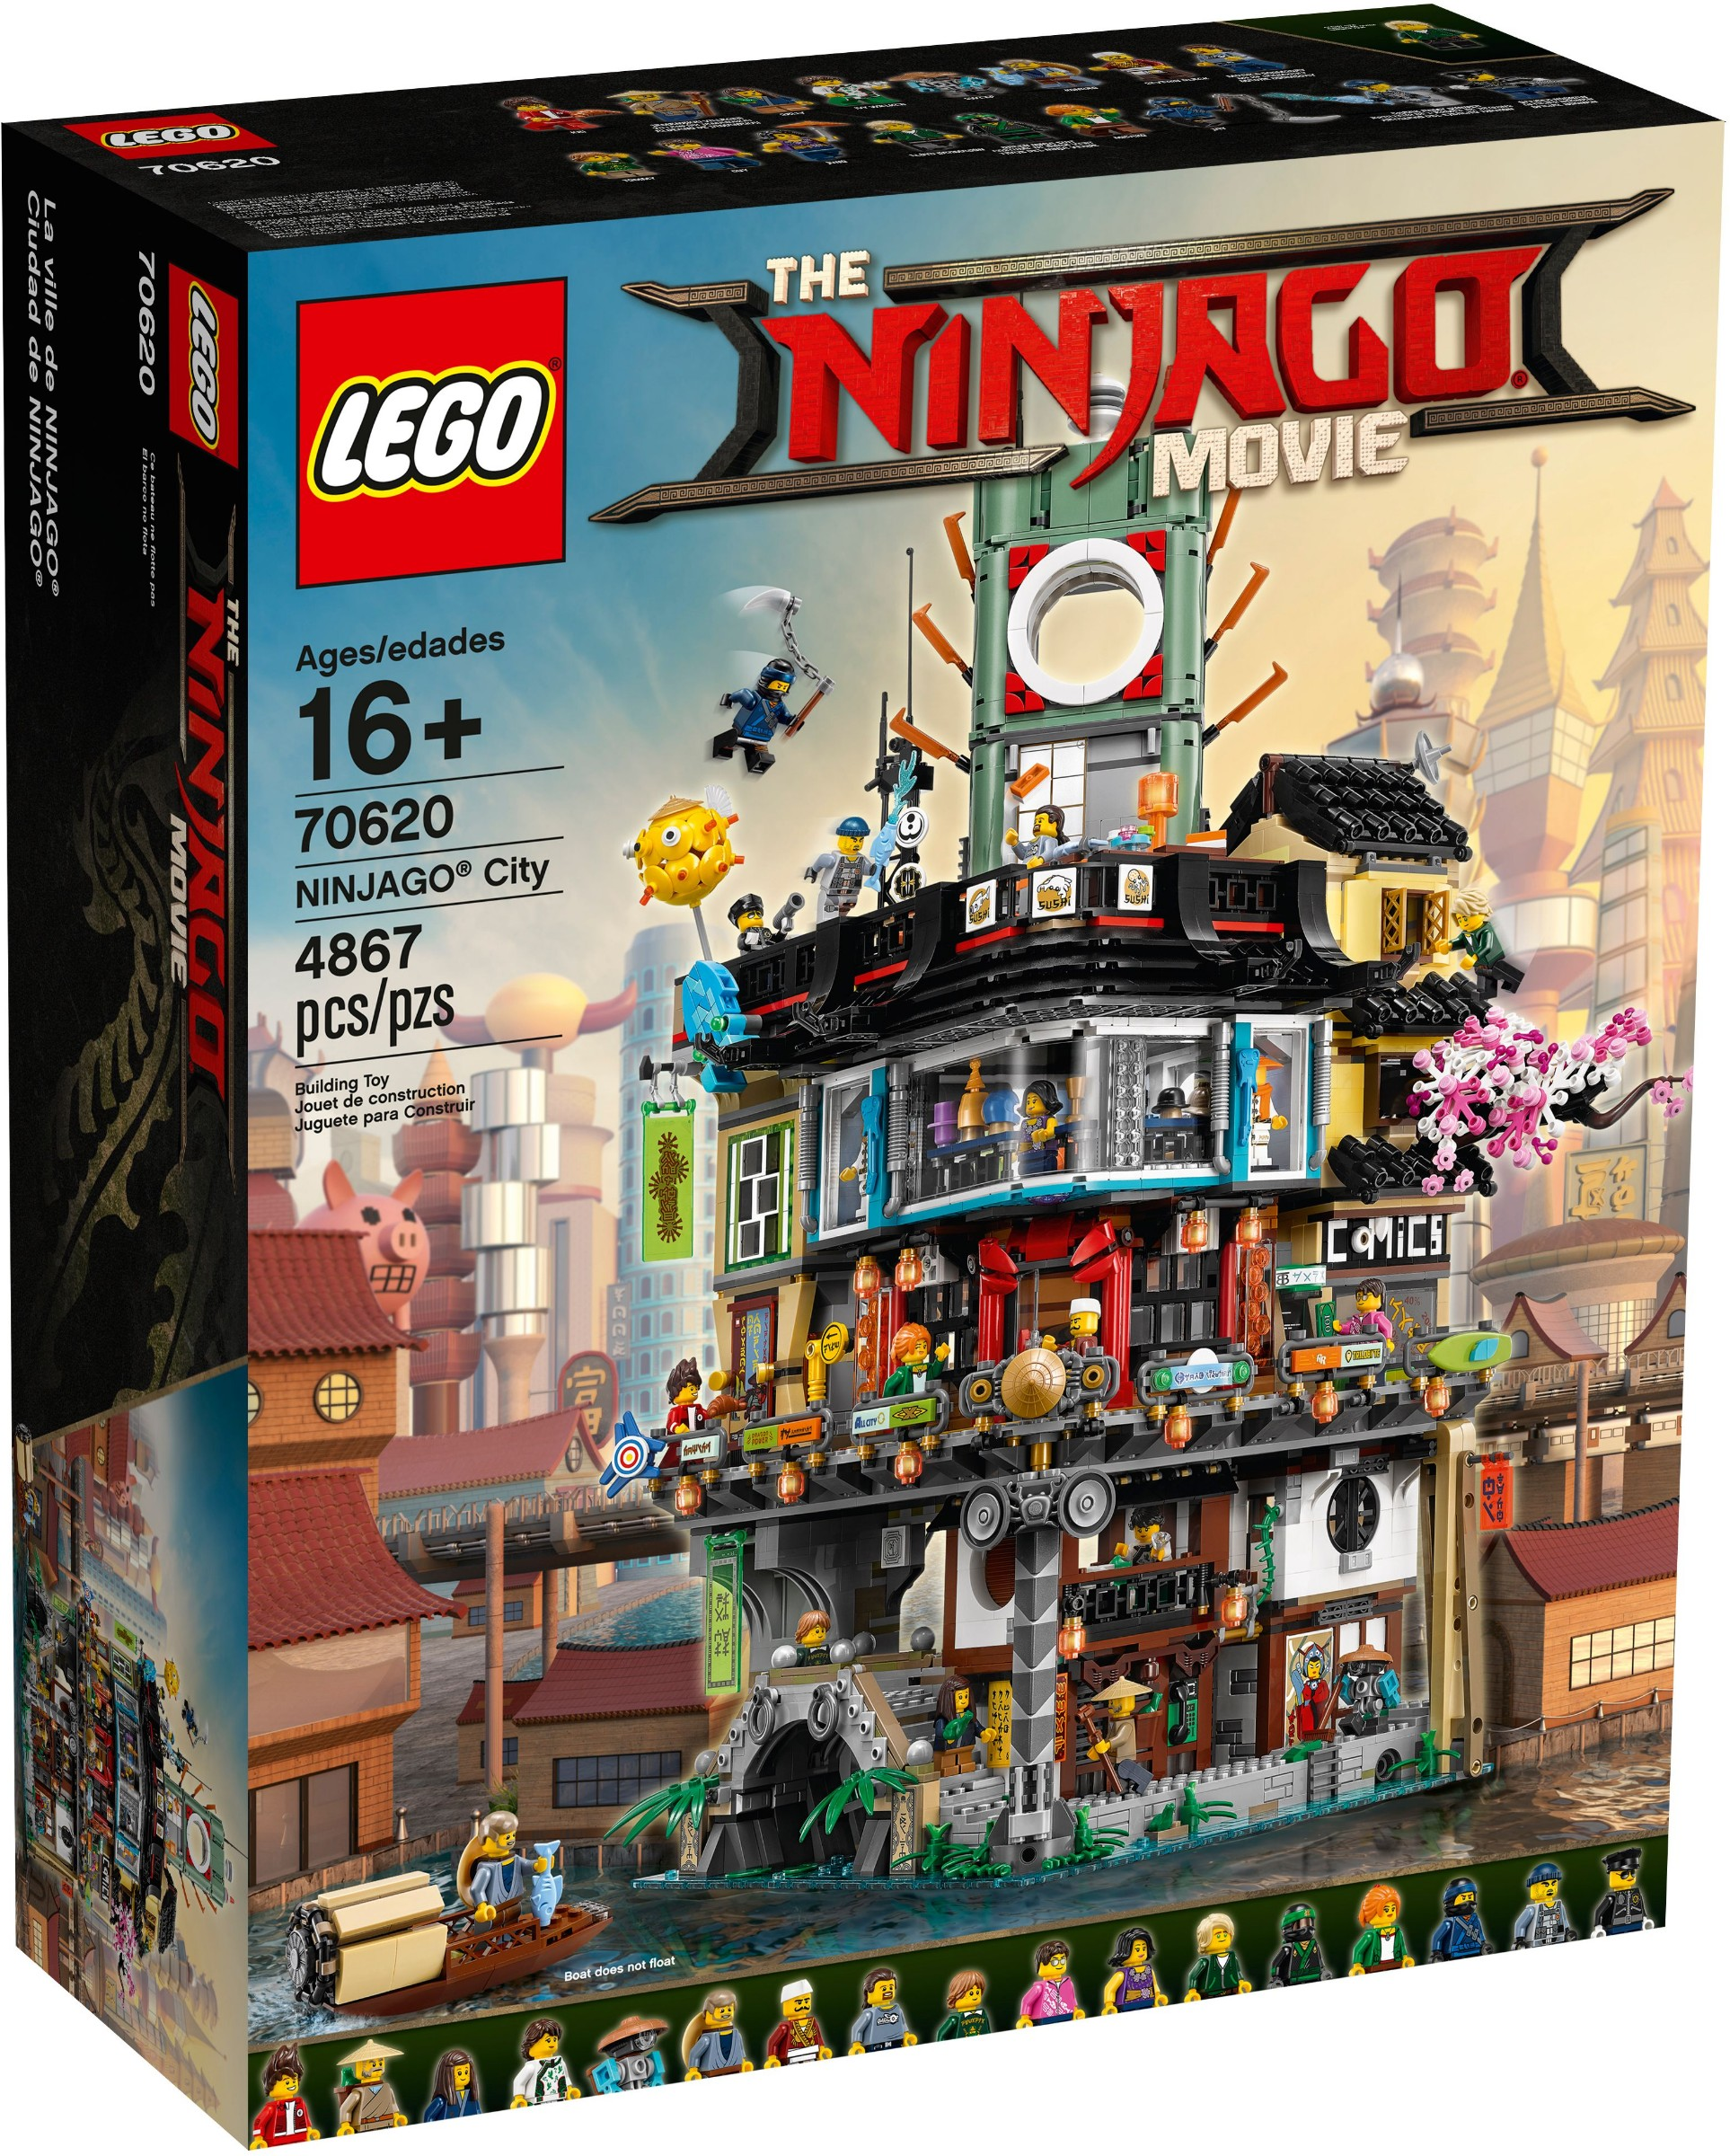 the lego ninjago movie ninjago city 70620 vorgestellt. Black Bedroom Furniture Sets. Home Design Ideas